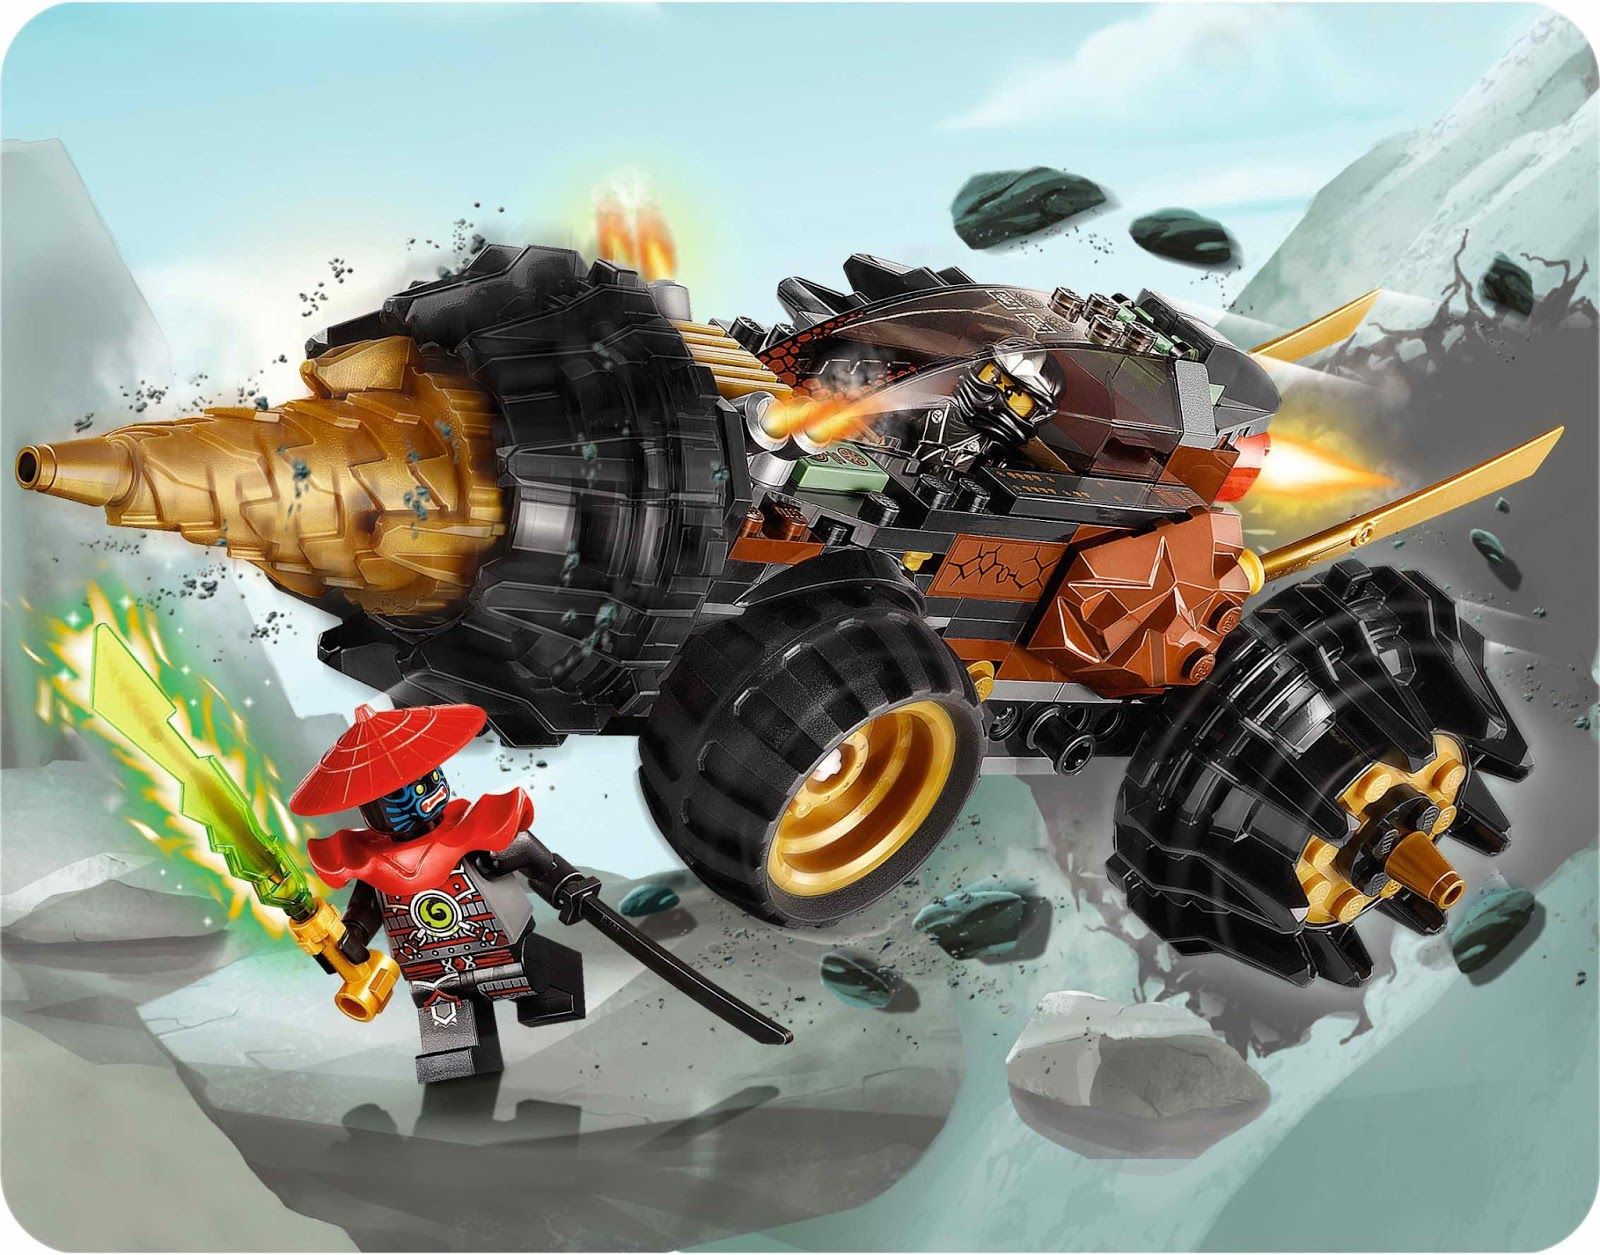 REPUBbLICk: set database: LEGO 70502 cole's earth driller